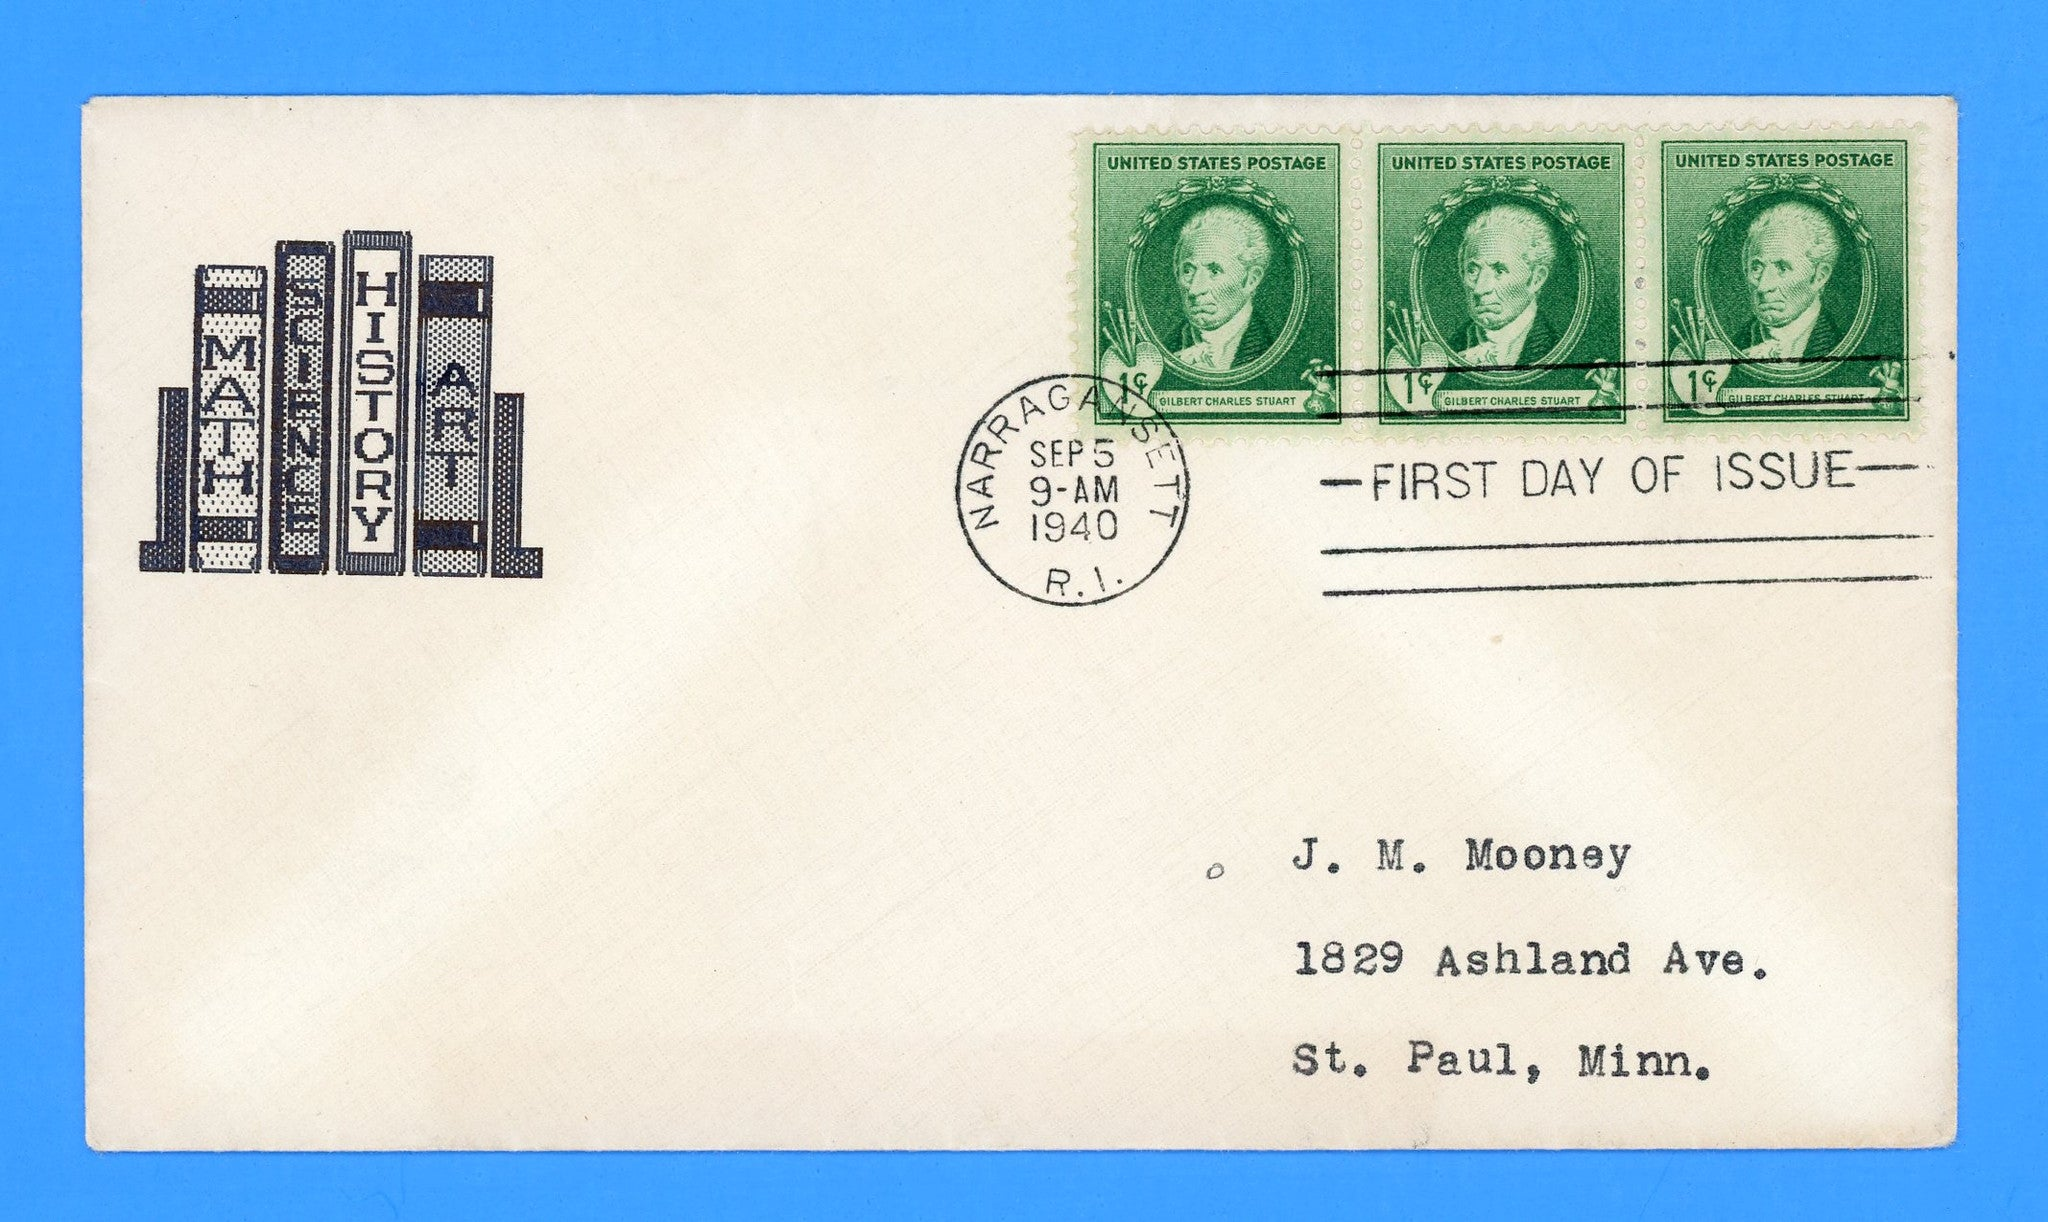 Scott #884 Gilbert Charles Stuart, Famous Americans First Day Cover